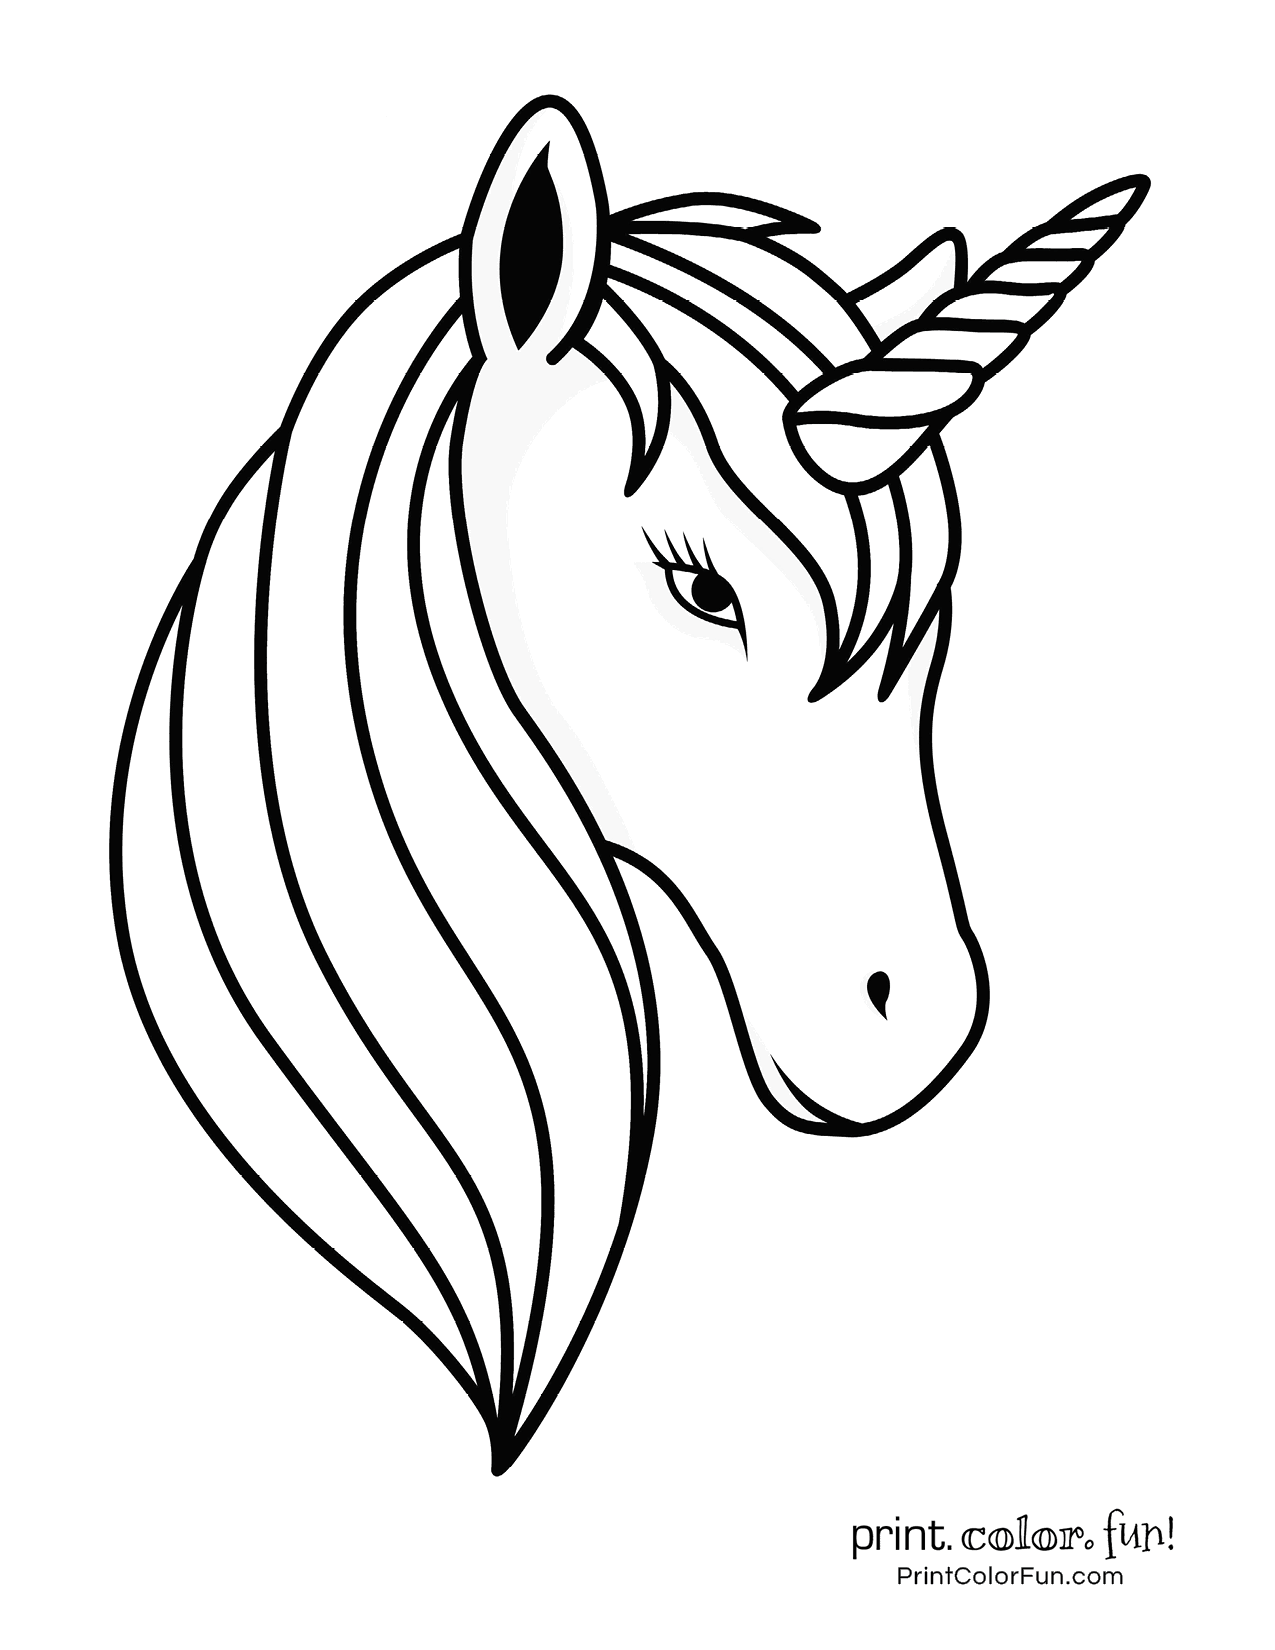 100 Magical Unicorn Coloring Pages The Ultimate Free Printable Collection At Print Color Fun Com C Unicorn Coloring Pages Coloring Pages Unicorn Images